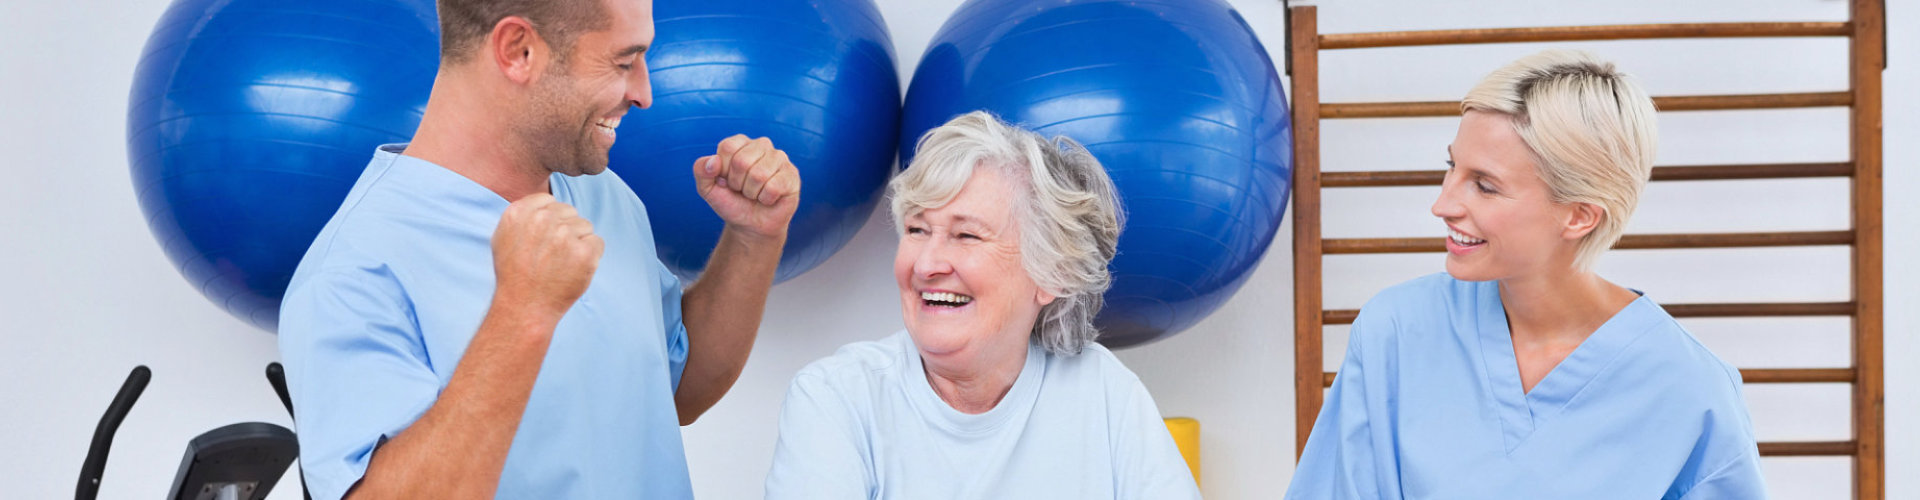 two physical therapist and senior woman smiling